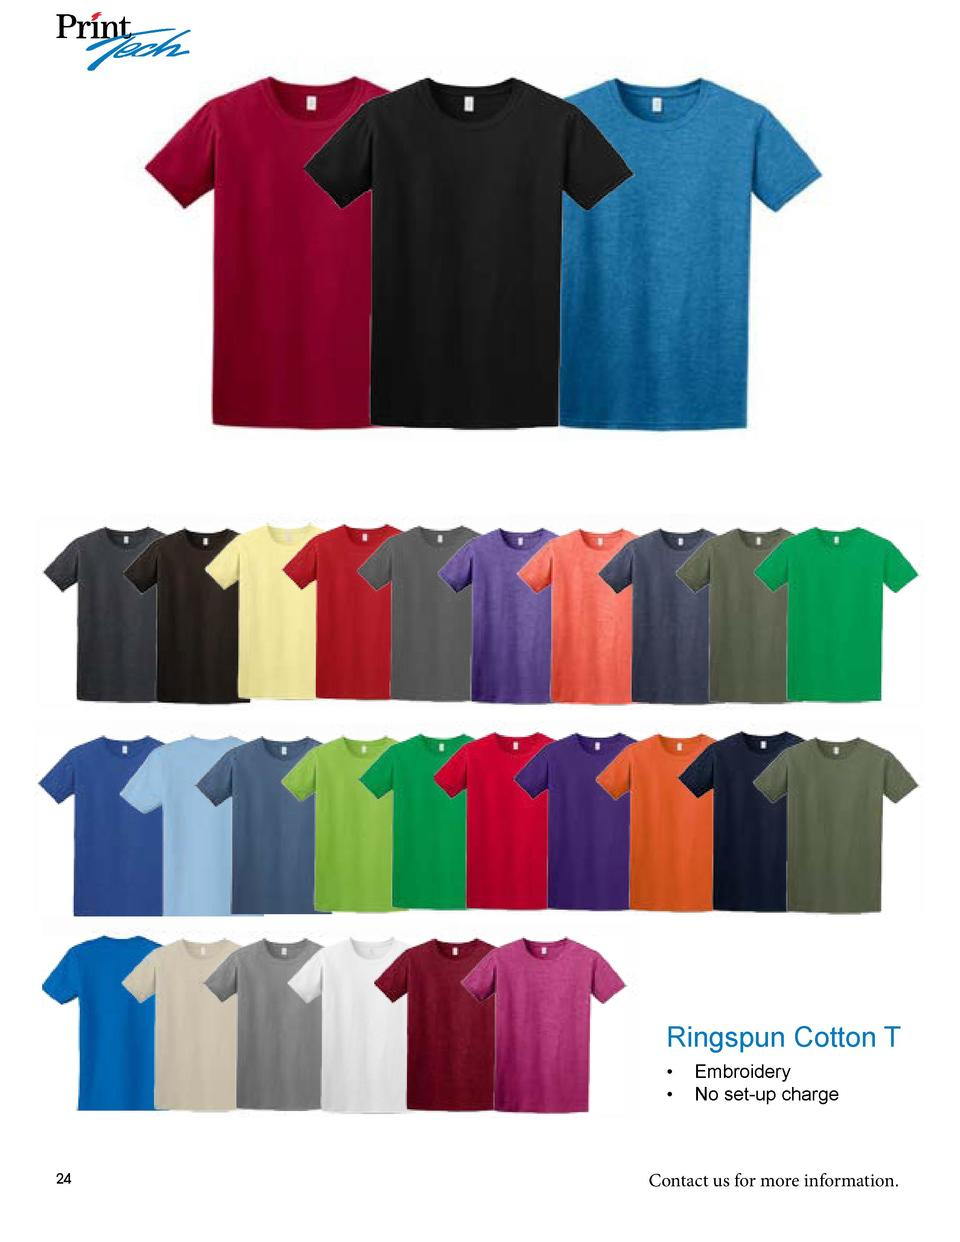 Ringspun Cotton T      Embroidery      No set-up charge  24  Contact us for more information.